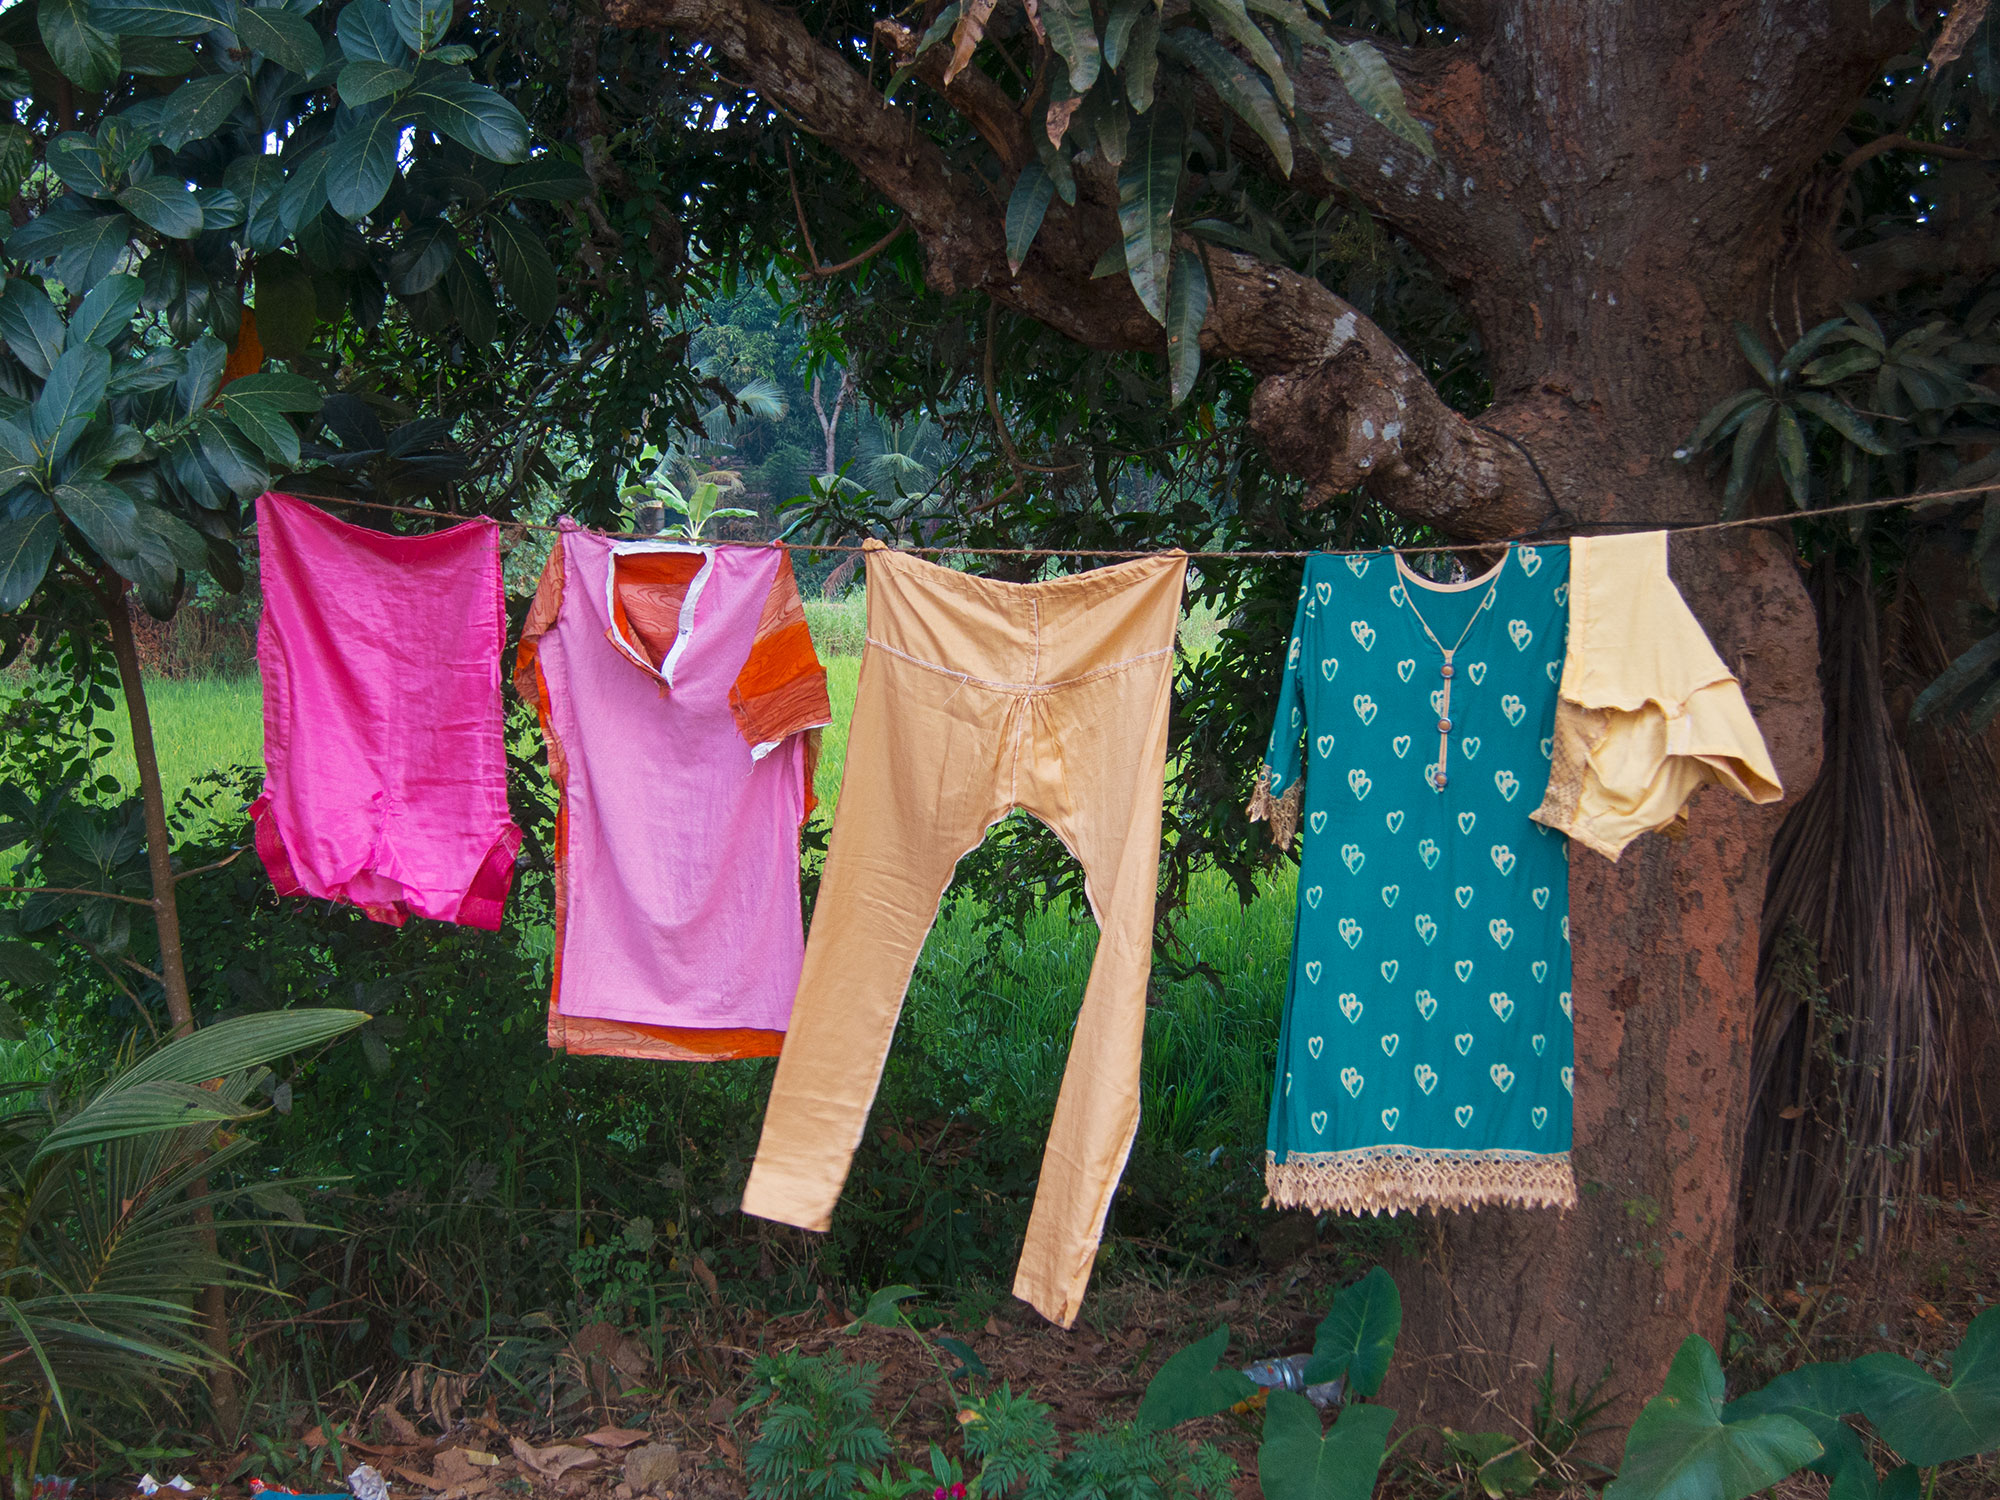 Some colorful laundry hanging up to dry.